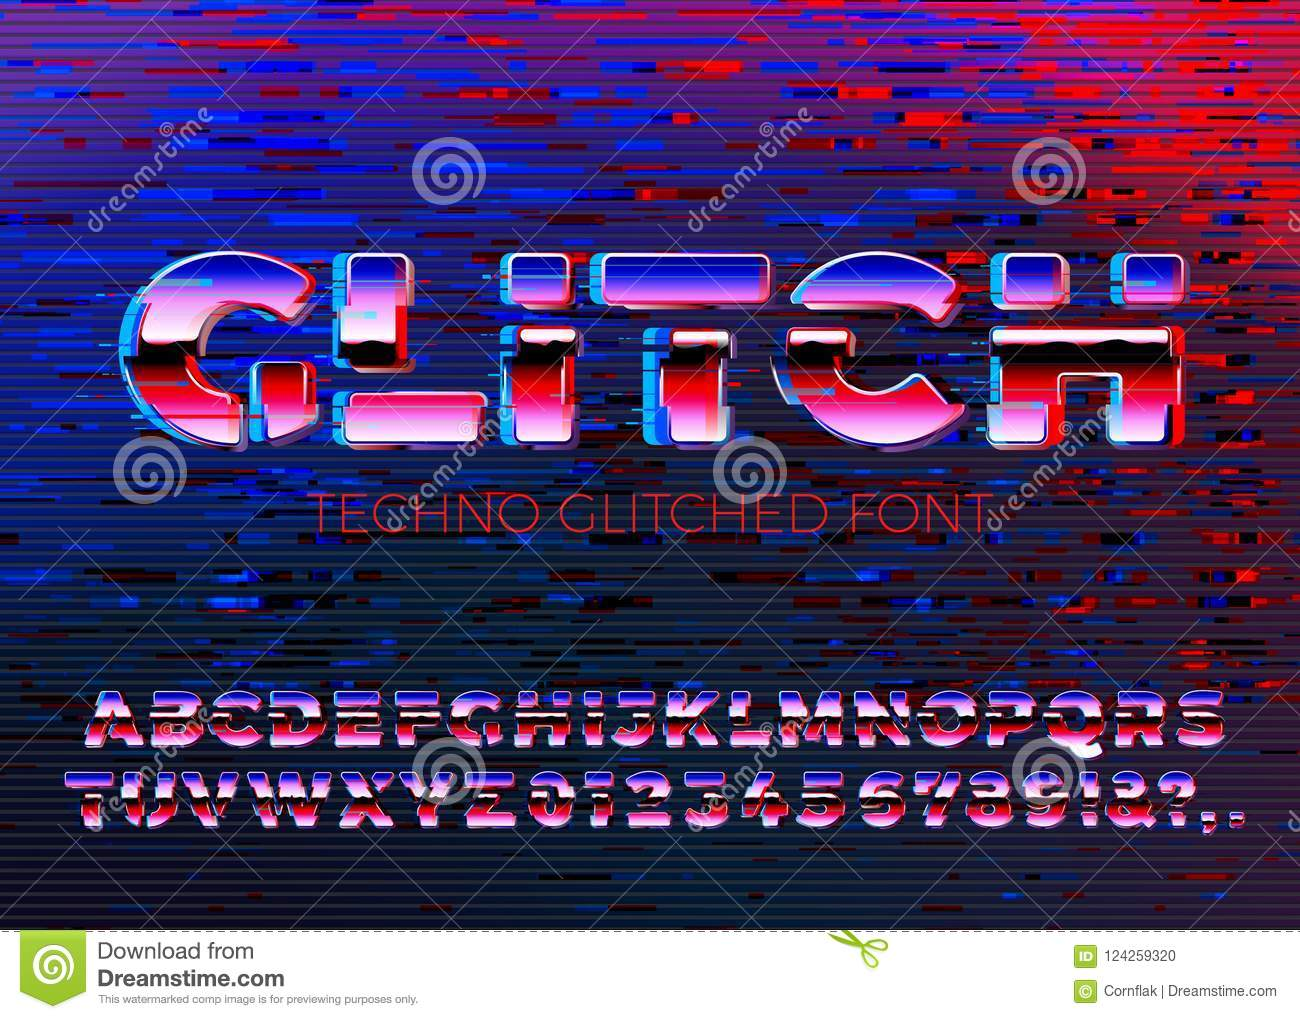 Fuente gliched vector del techno con distorsiones